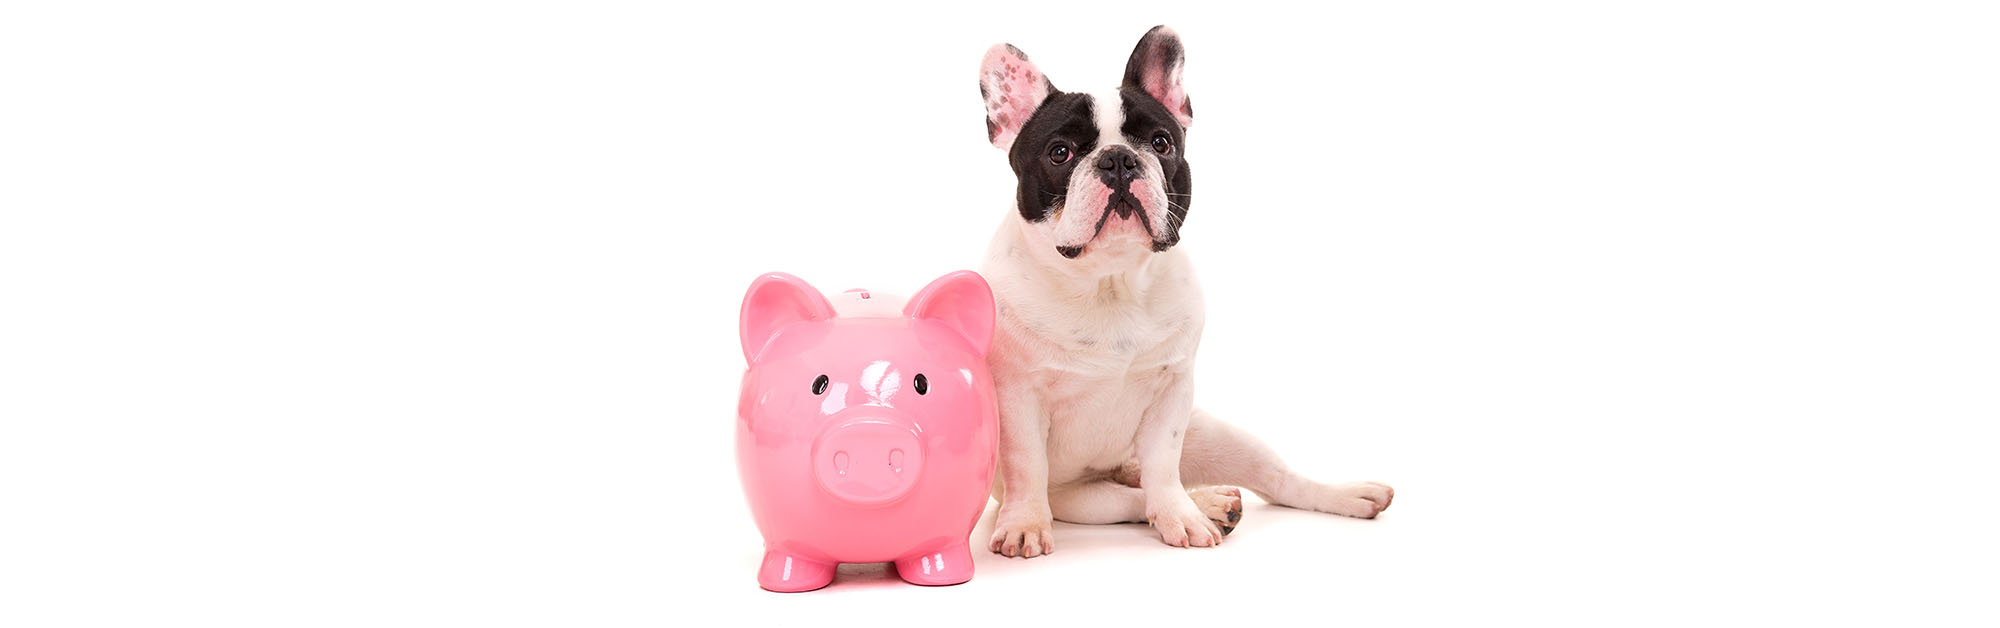 frenchie with pink piggy bank